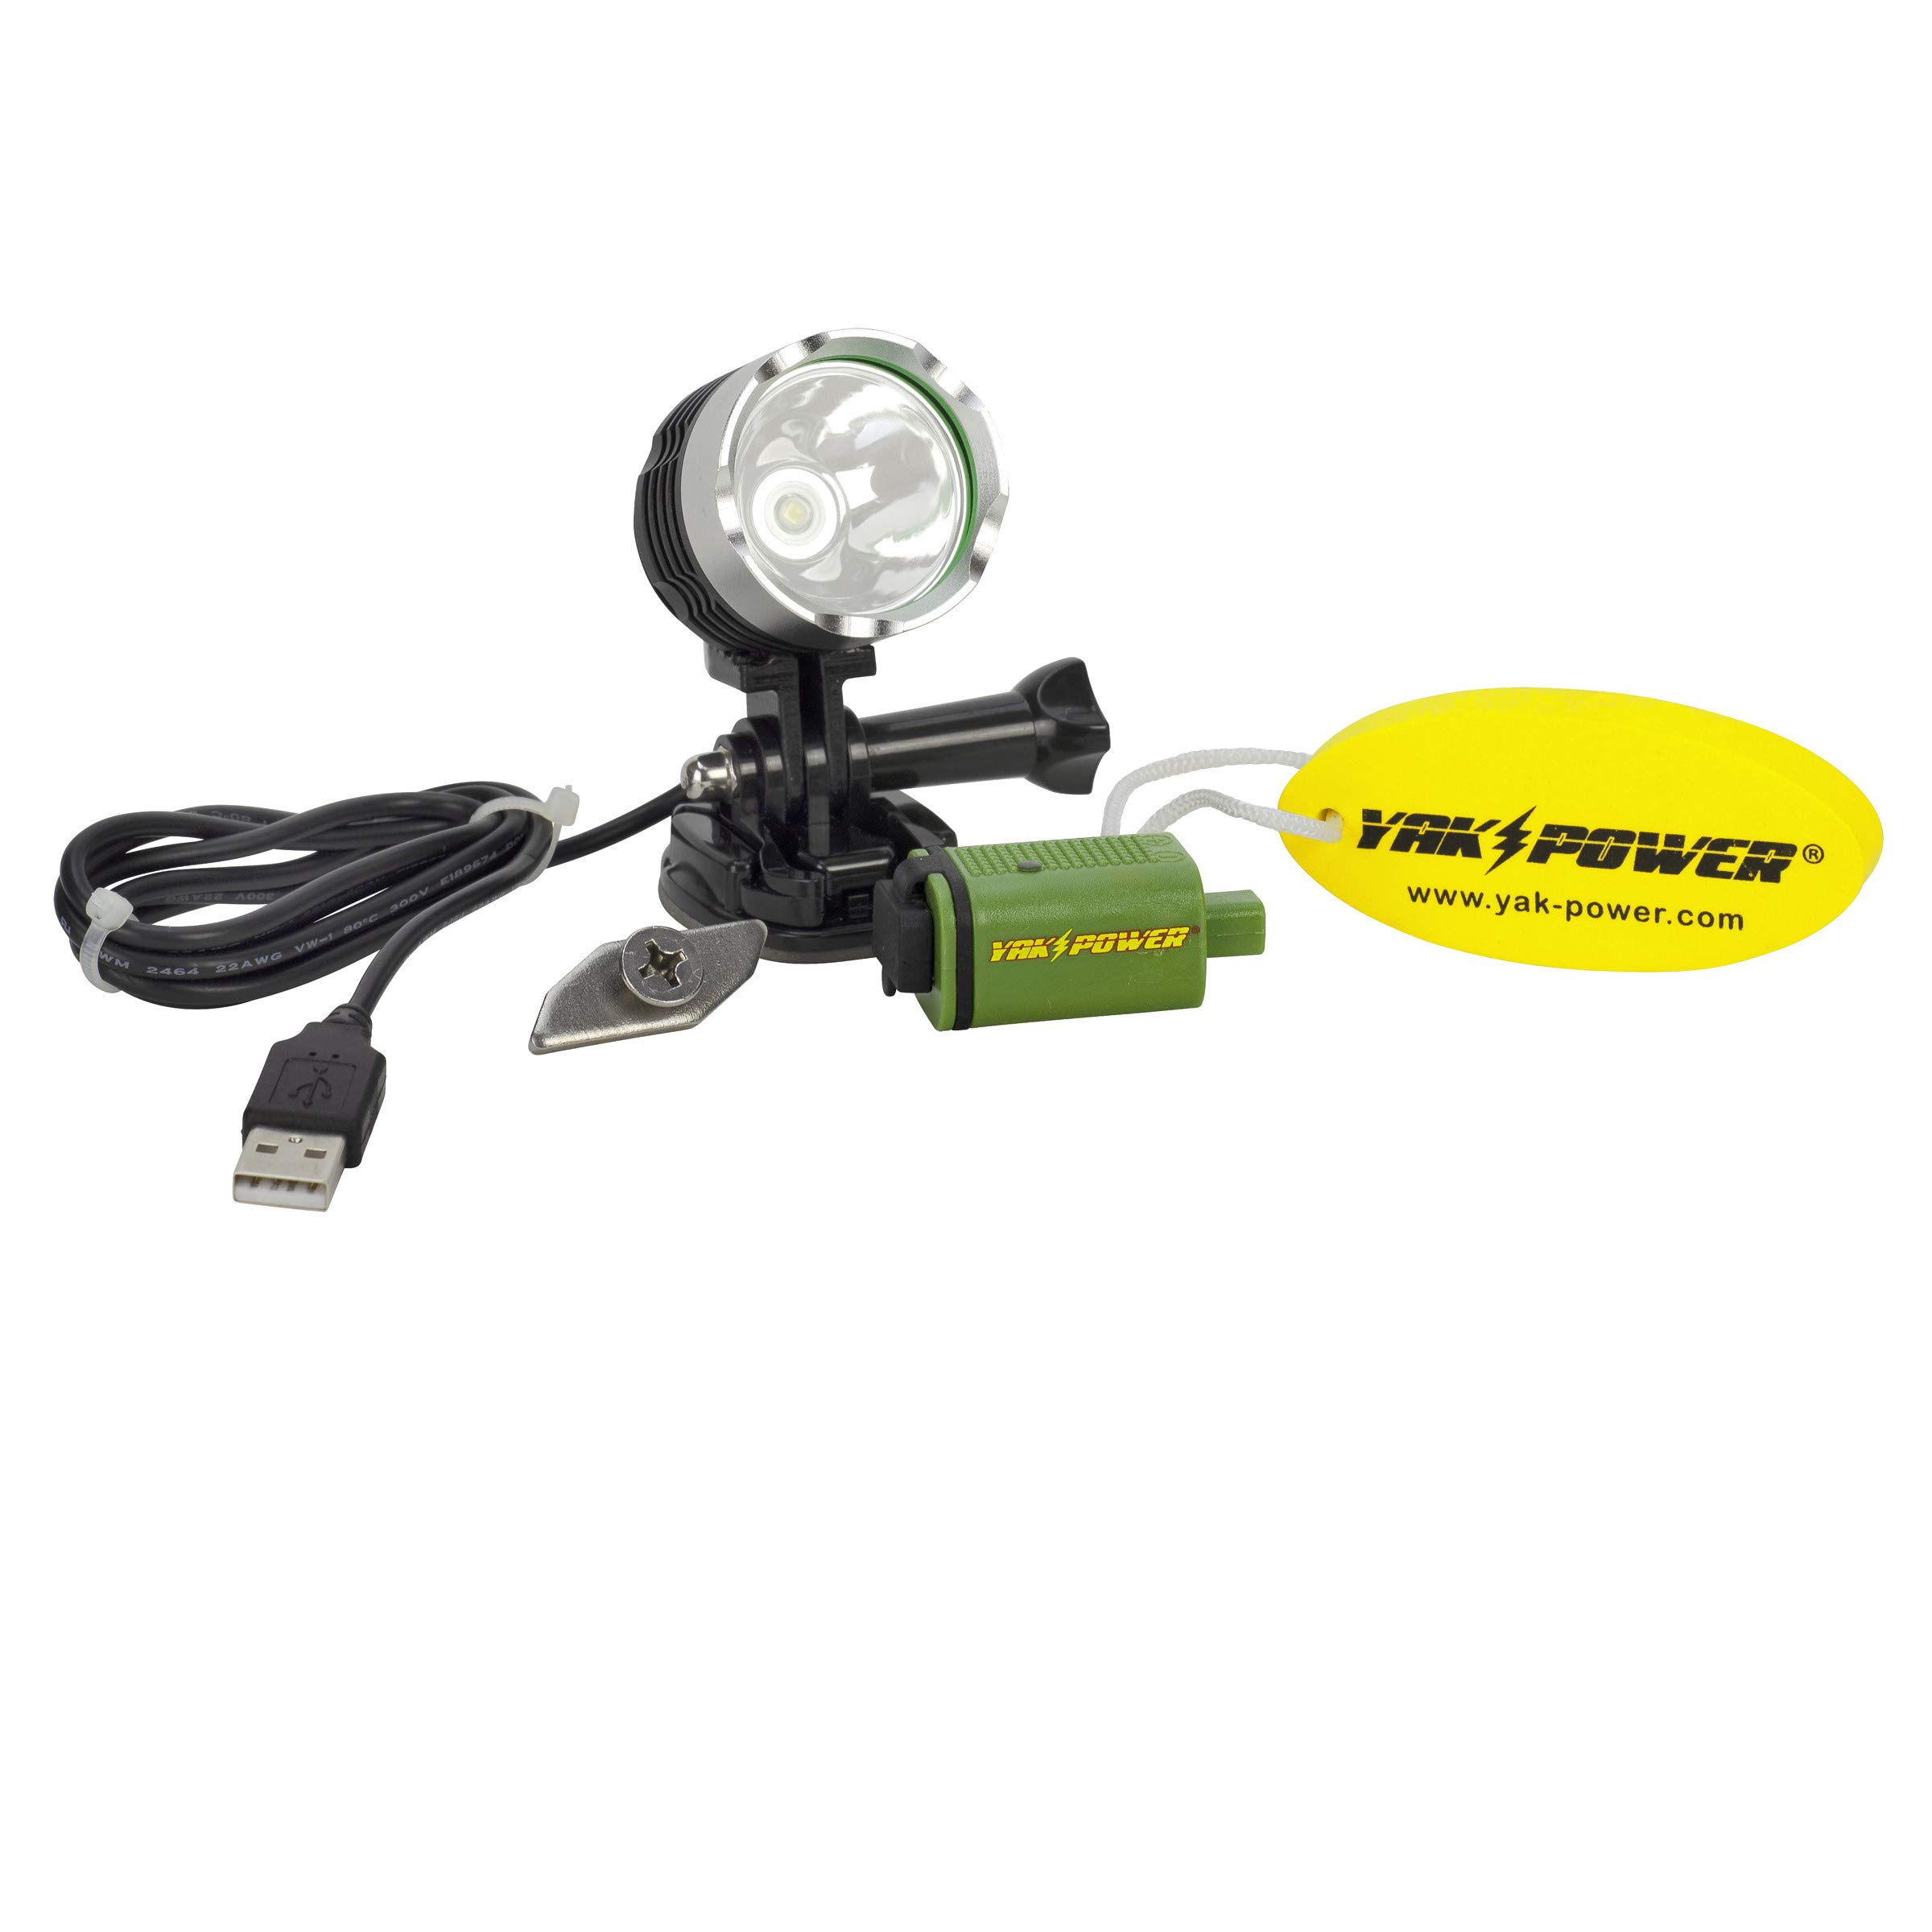 Yak-Power YP-USBSL USB Spot and Safety Light by Yak-Power